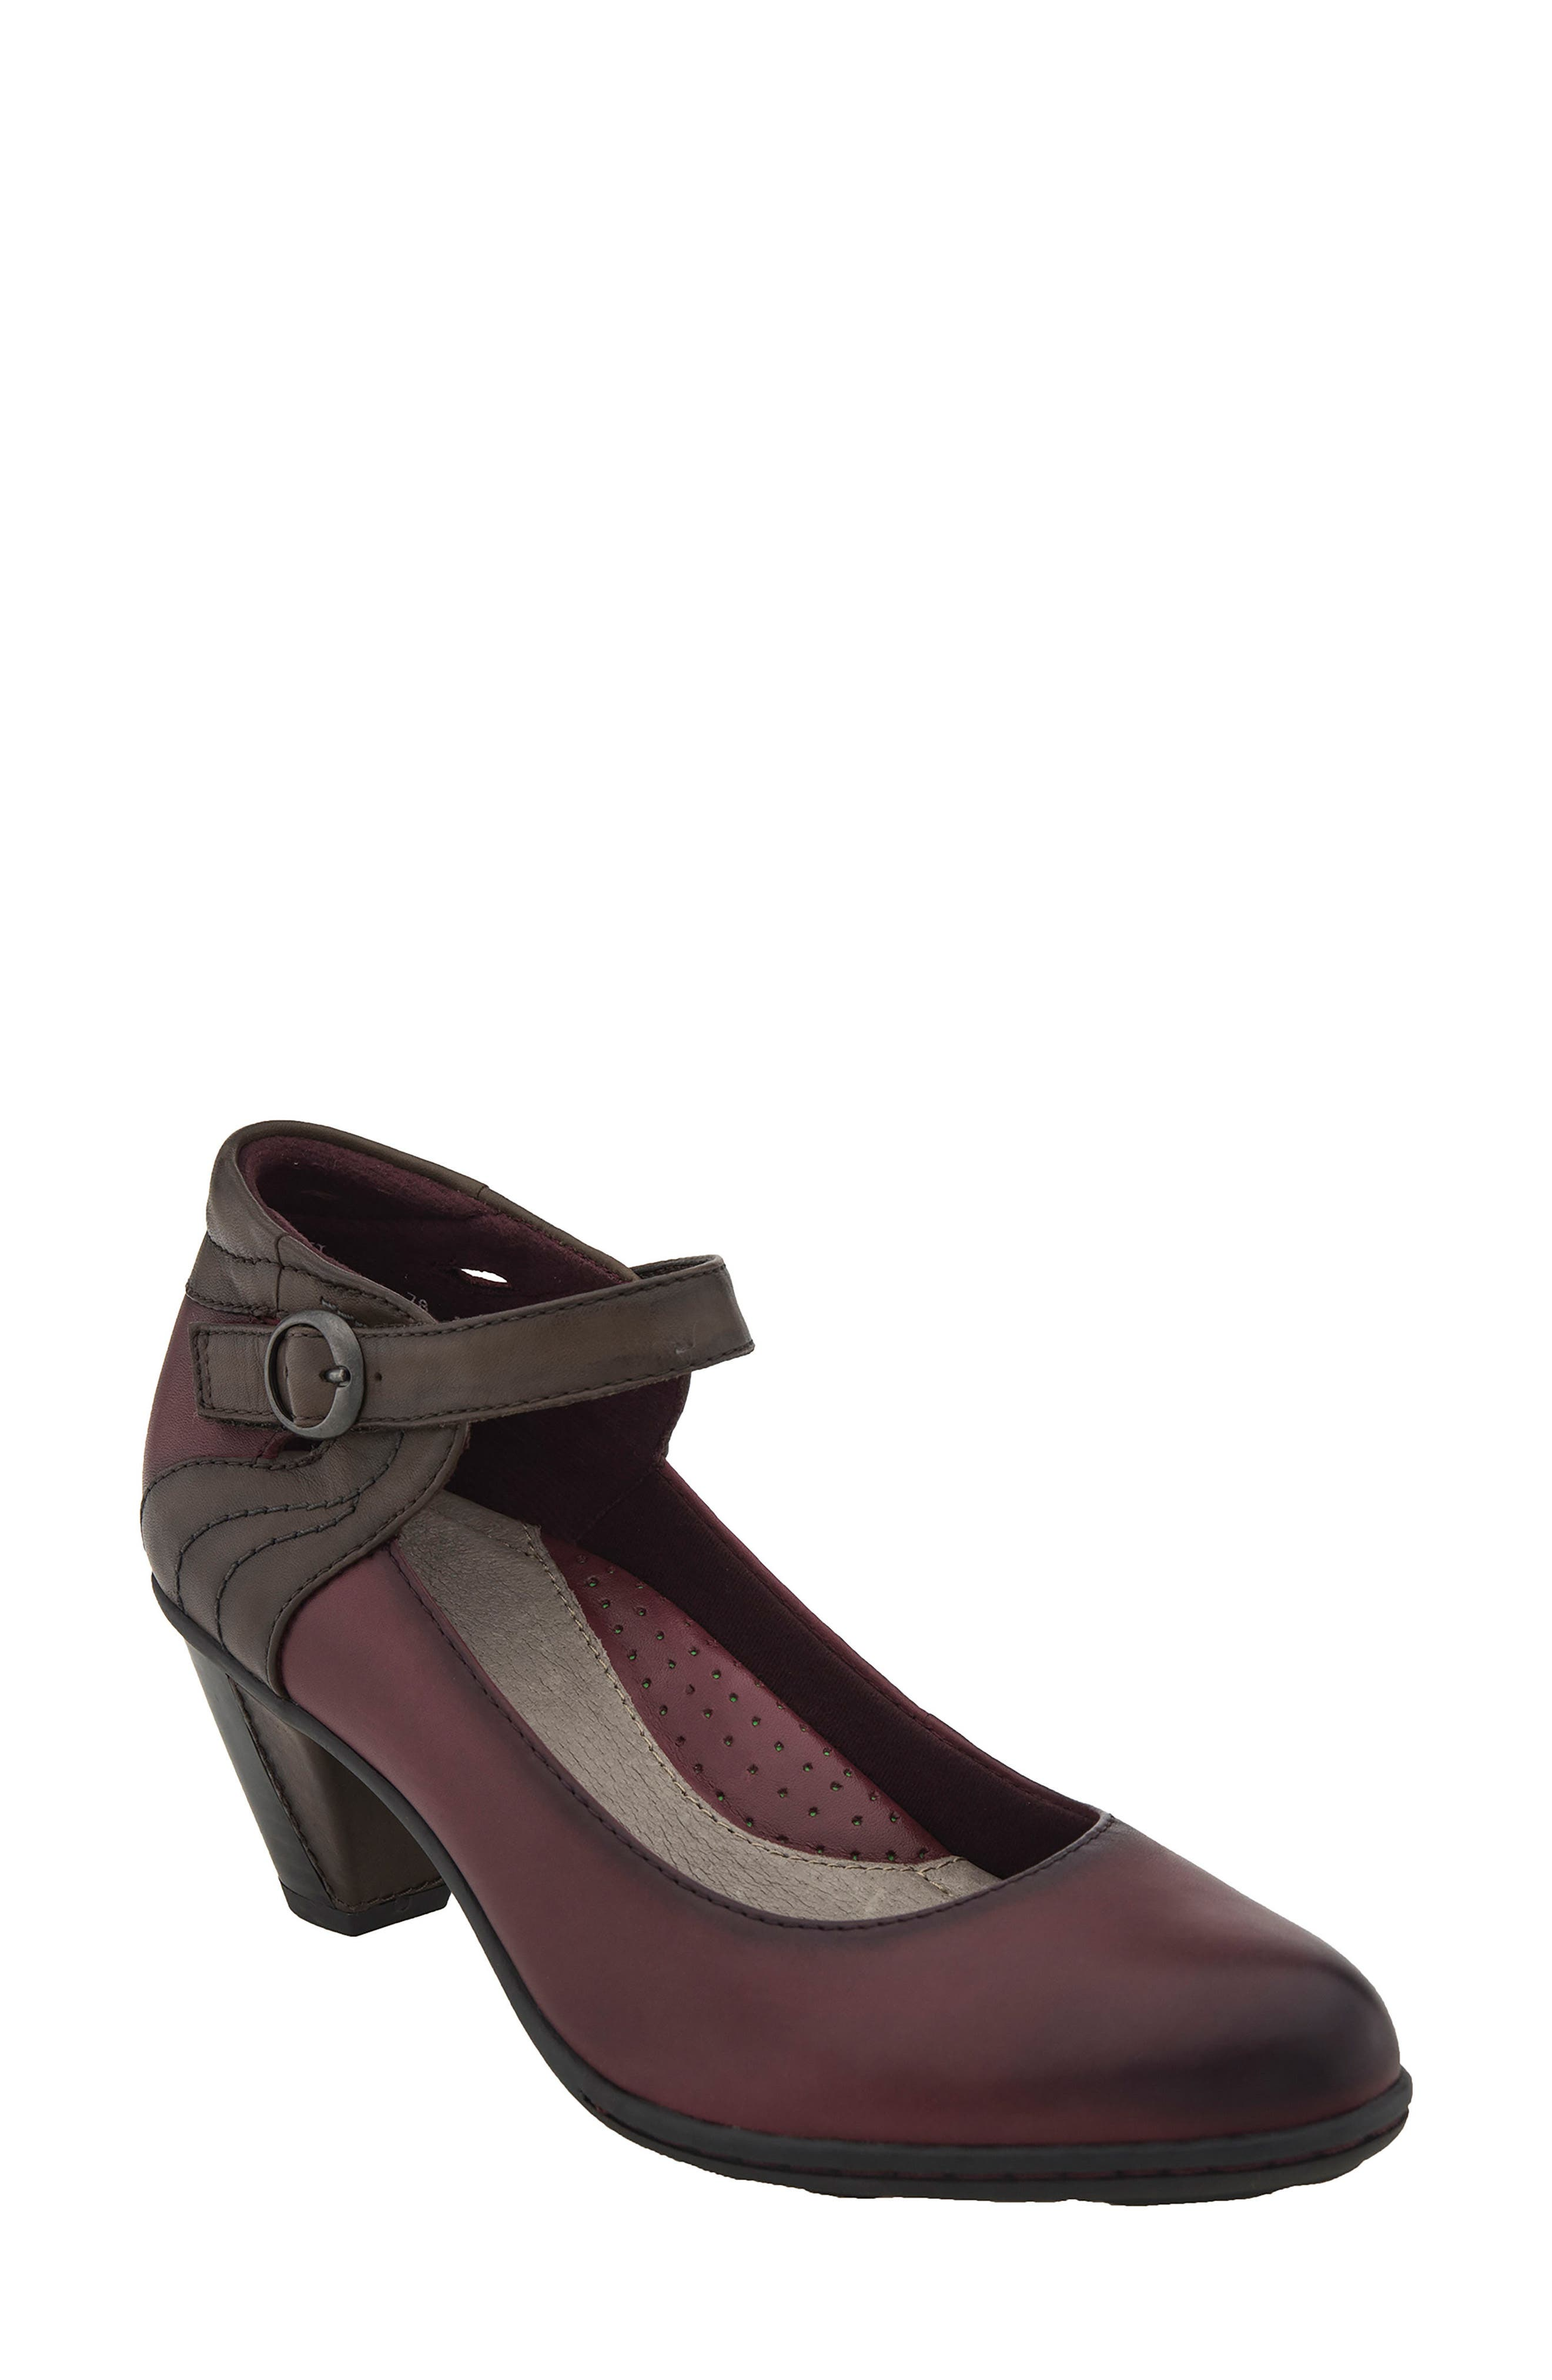 Main Image - Earth® Garnet Ankle Strap Pump (Women)